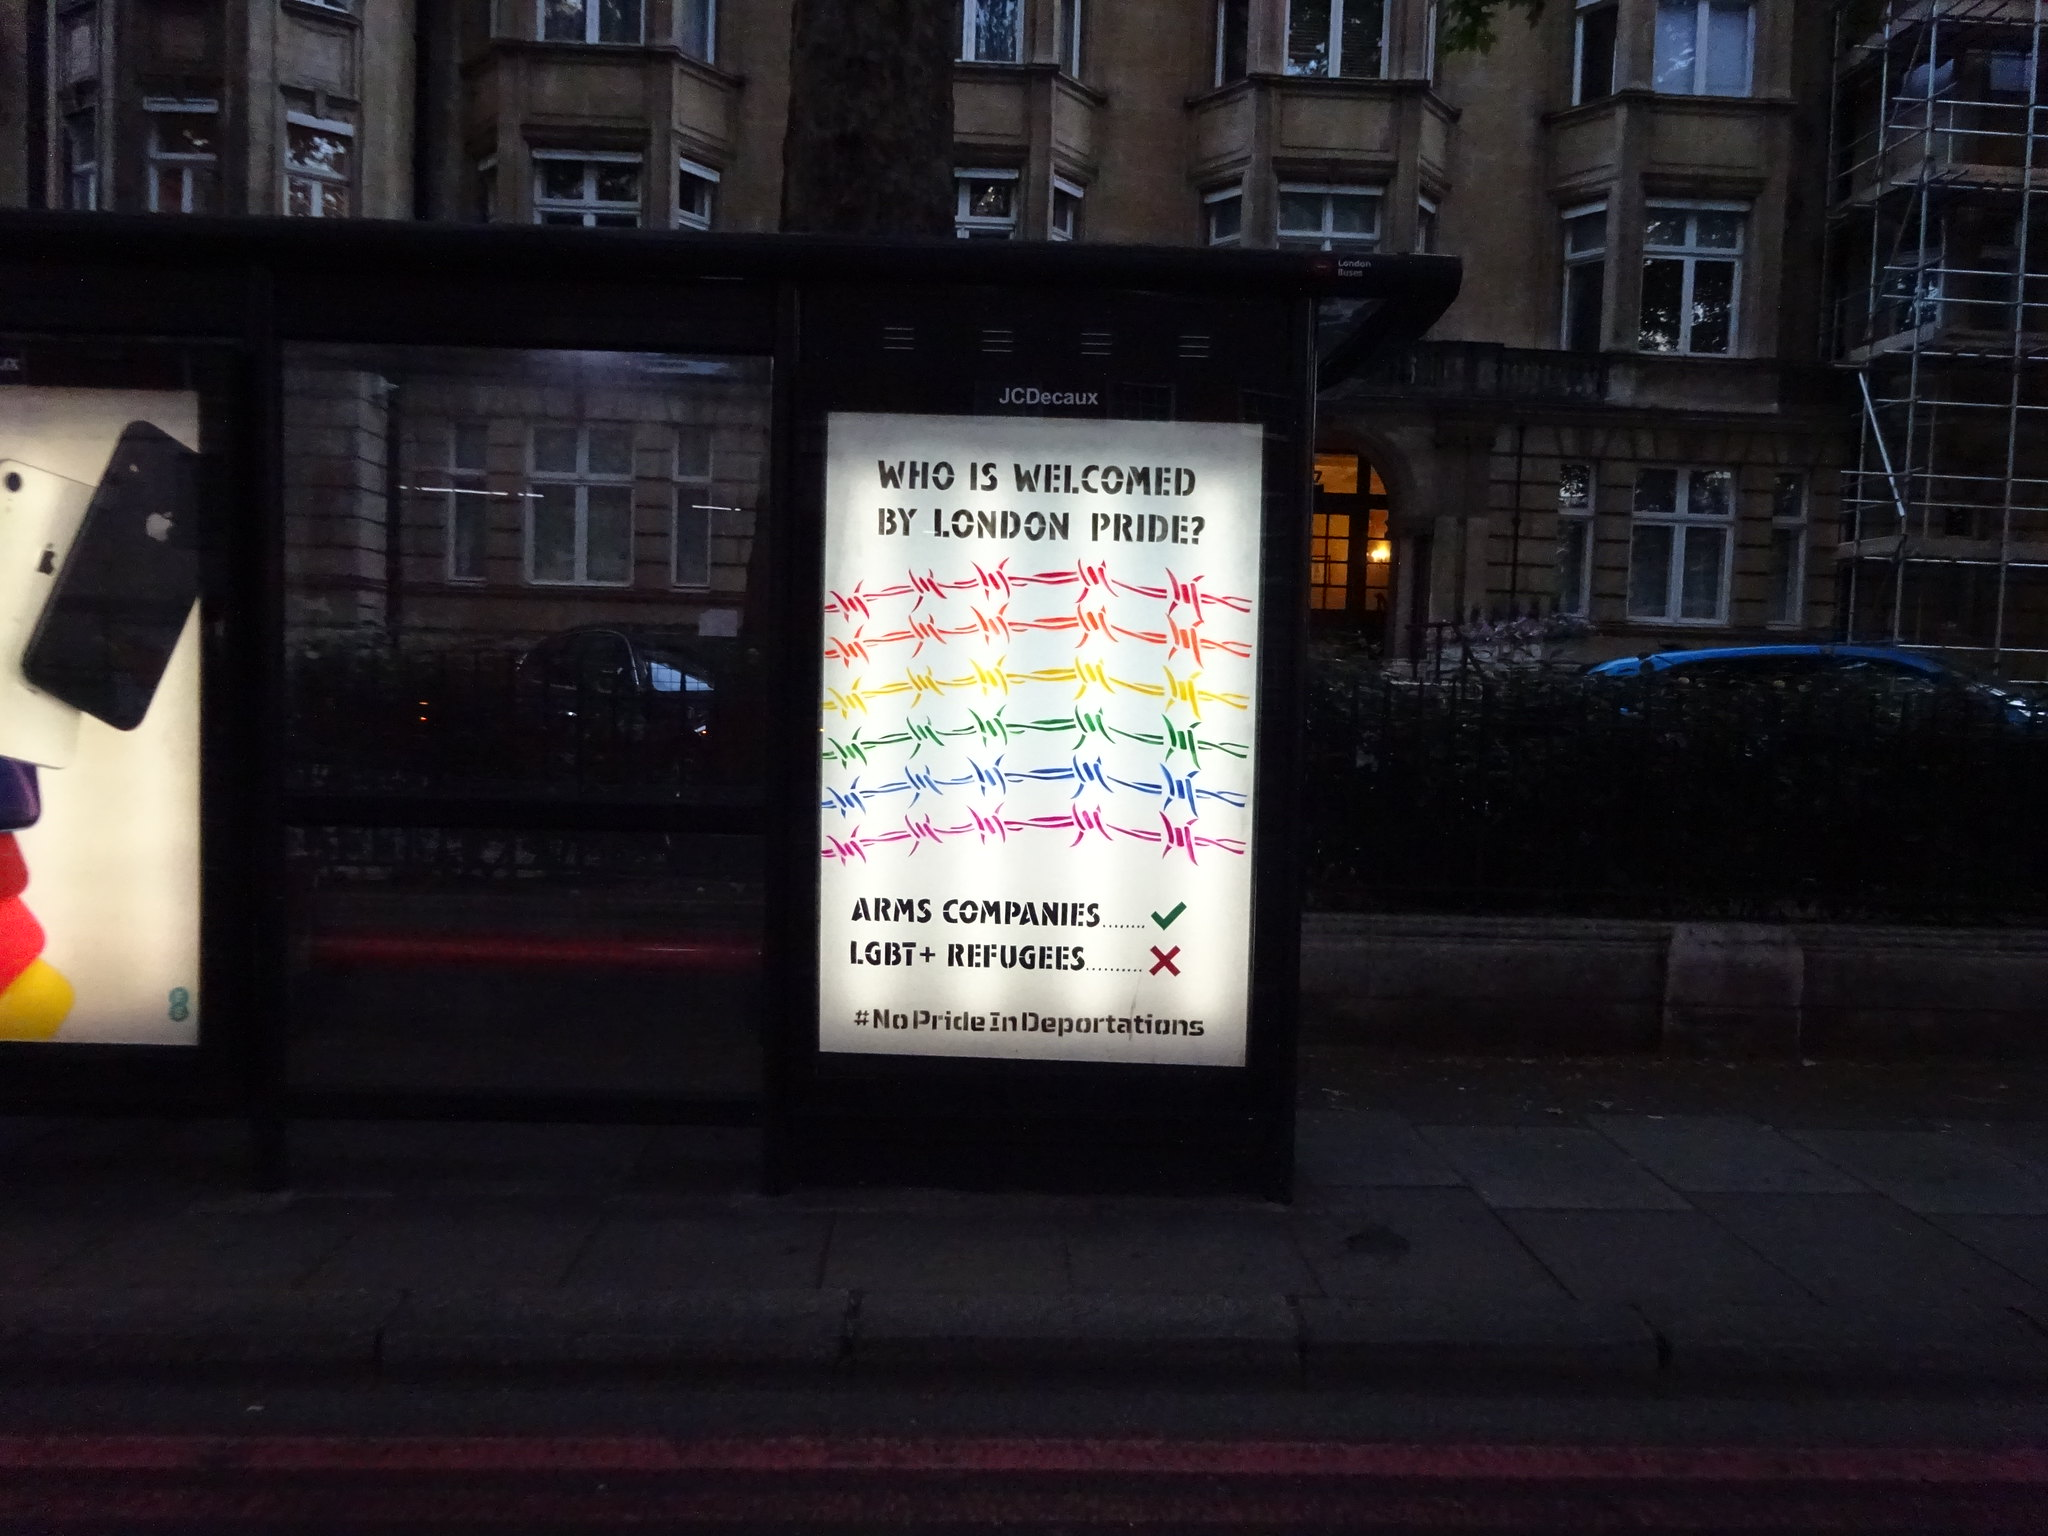 Bus stop adhack by Lesbians and Gays Support the Migrants and Protest Stencil protesting the exclusion of LGBT+ asylum seekers, homeless people and community groups from Pride in London5